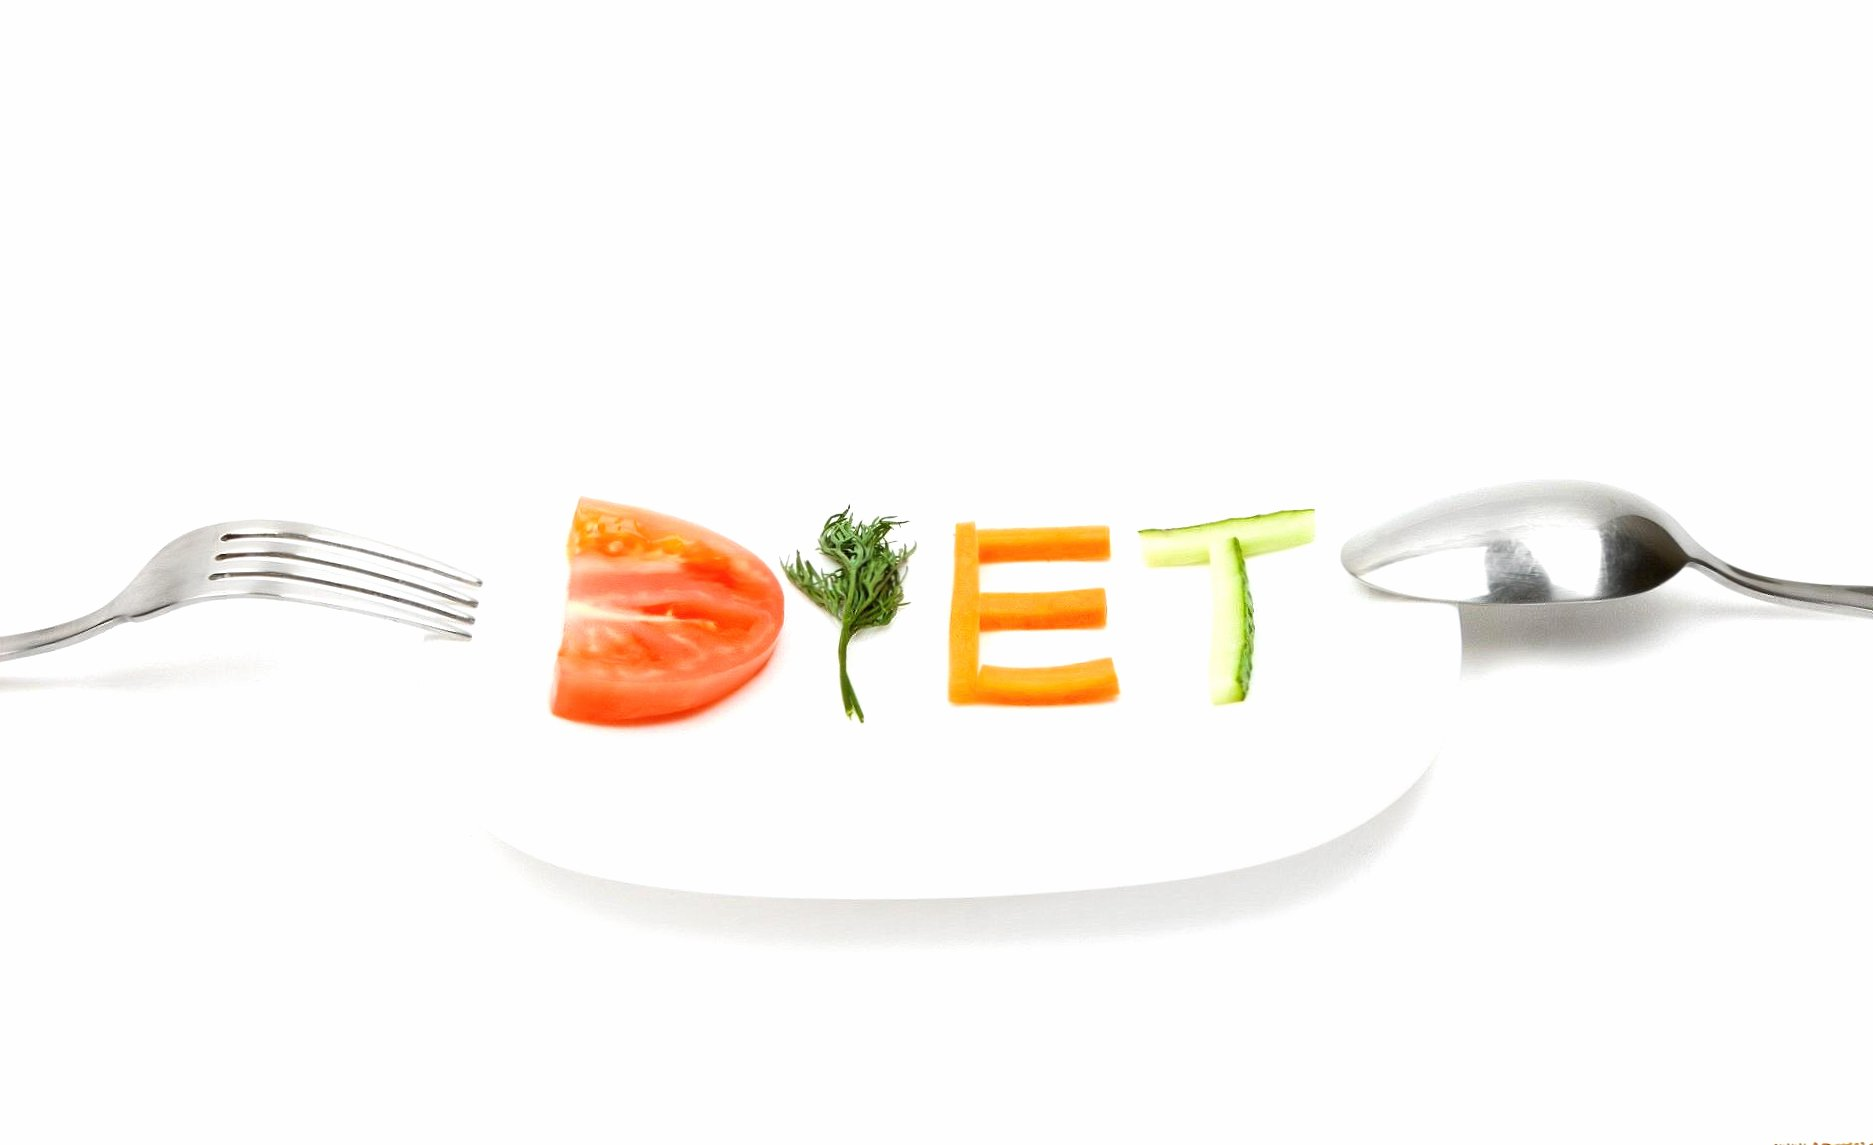 Diet wallpapers HD quality